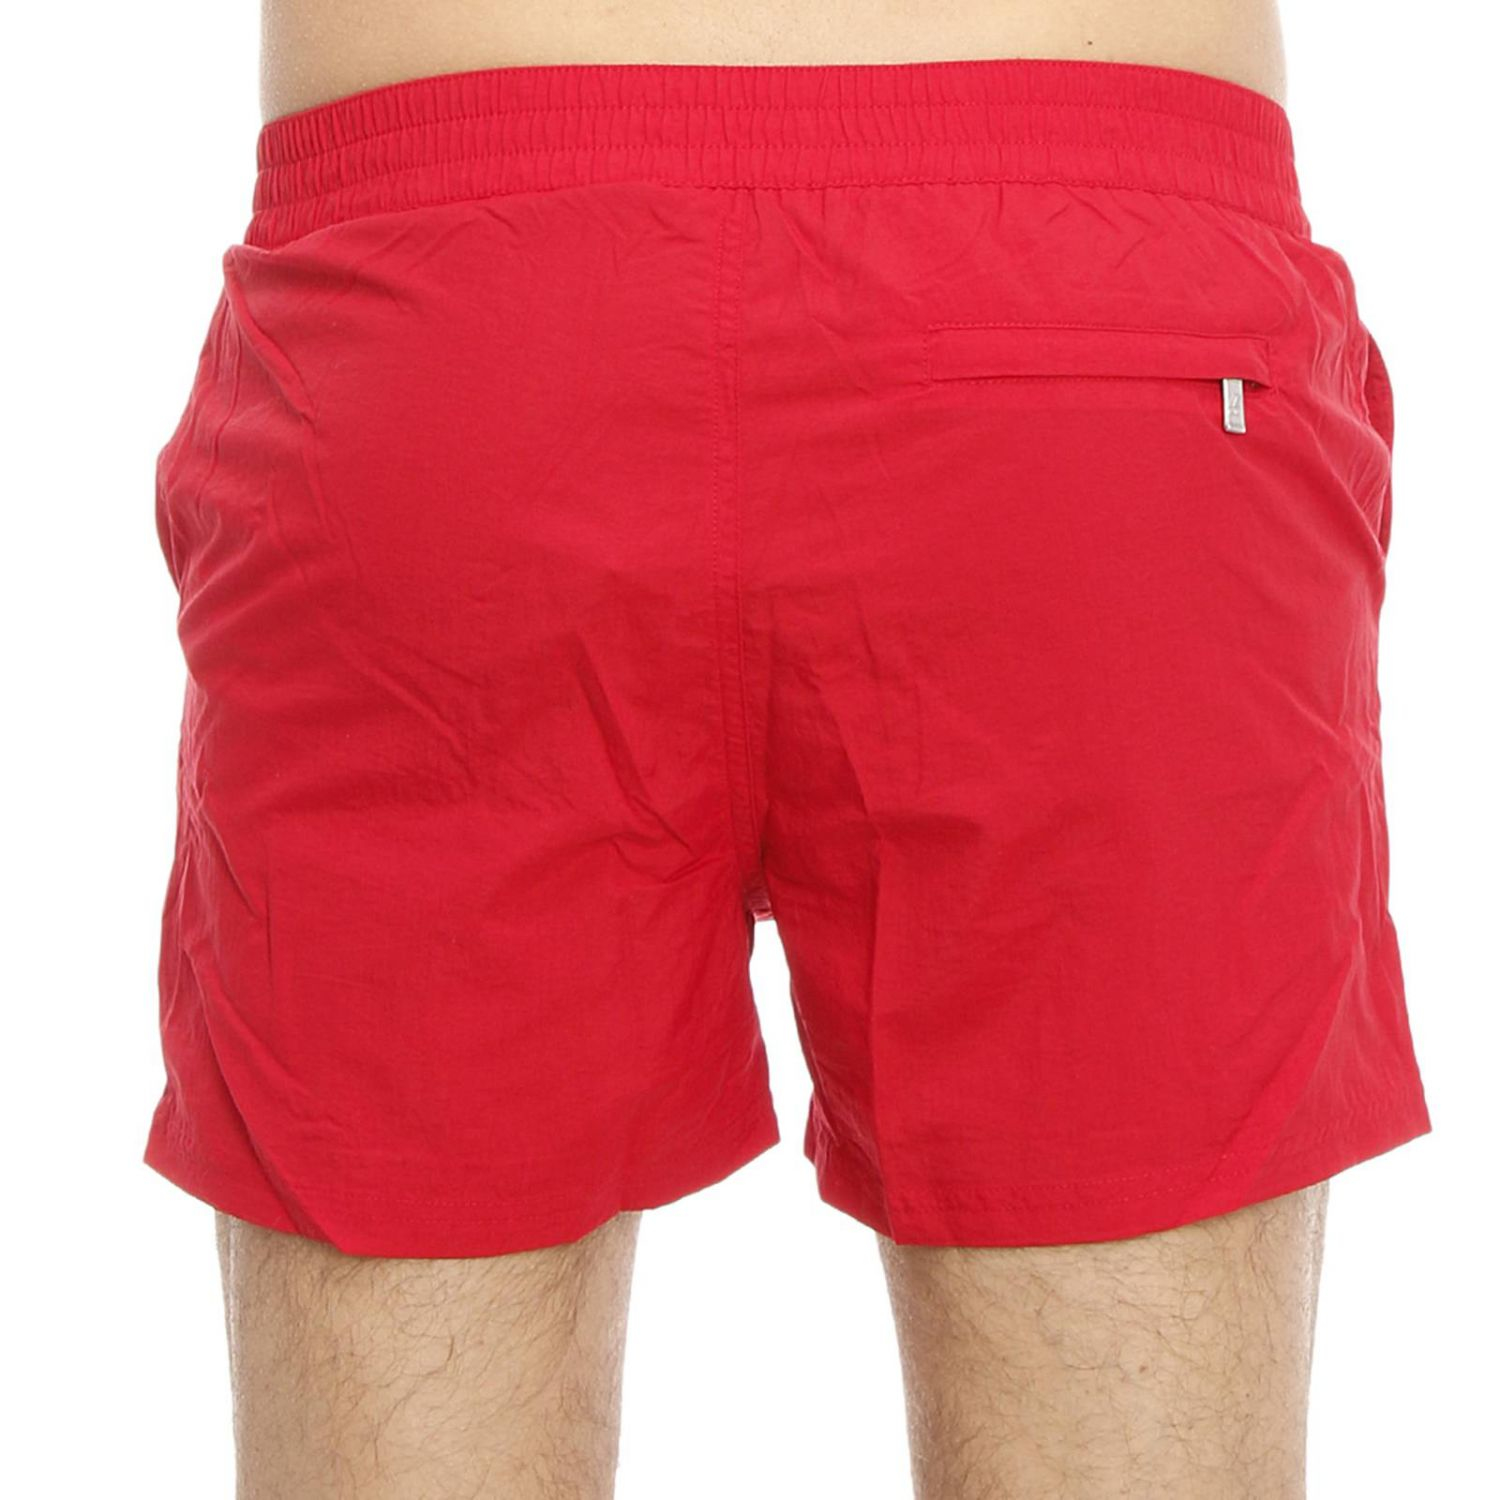 K-way Men's Swimwear in Red for Men